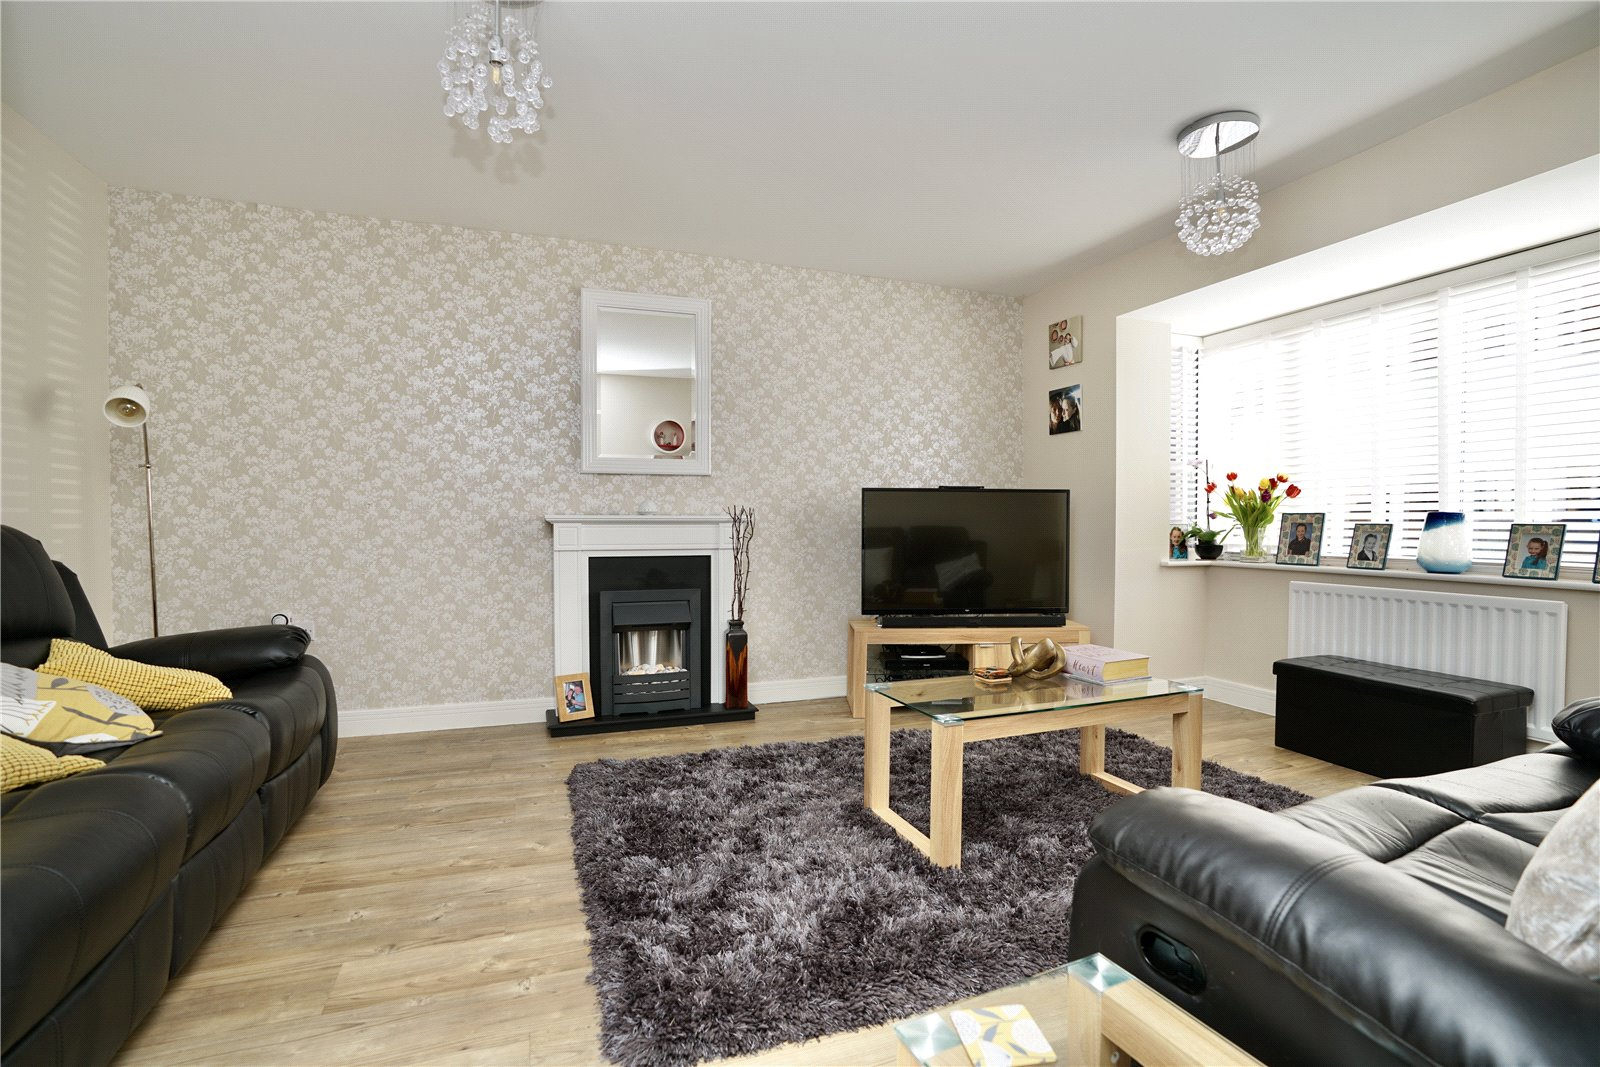 4 bed house for sale in Whinfell Close, Eaton Socon  - Property Image 3